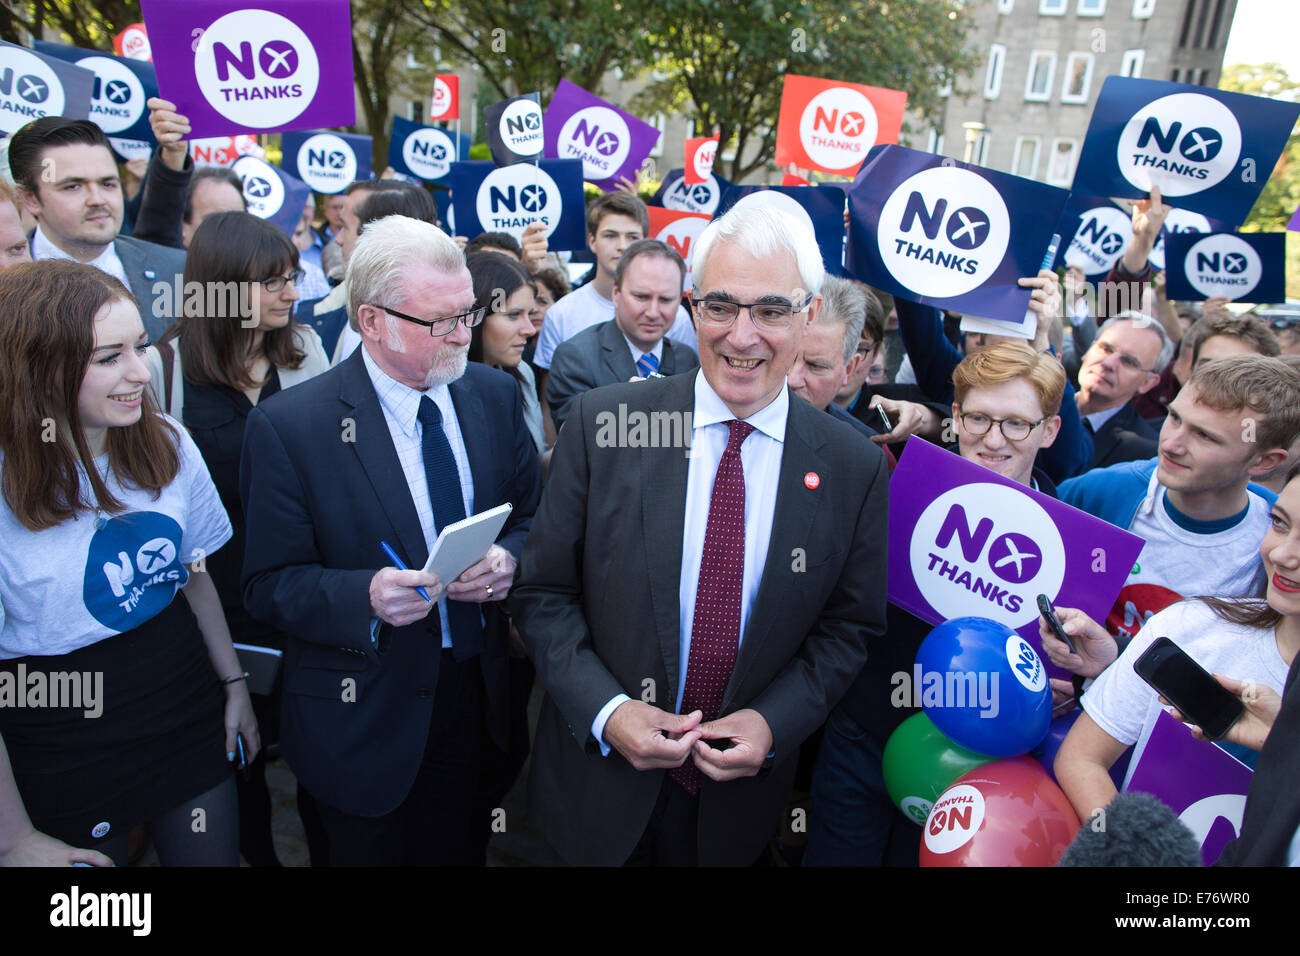 Edinburgh, Scotland, UK. 8th Sep, 2014. Picture shows Alastair Darling leader of 'Better Together' campaign - Stock Image